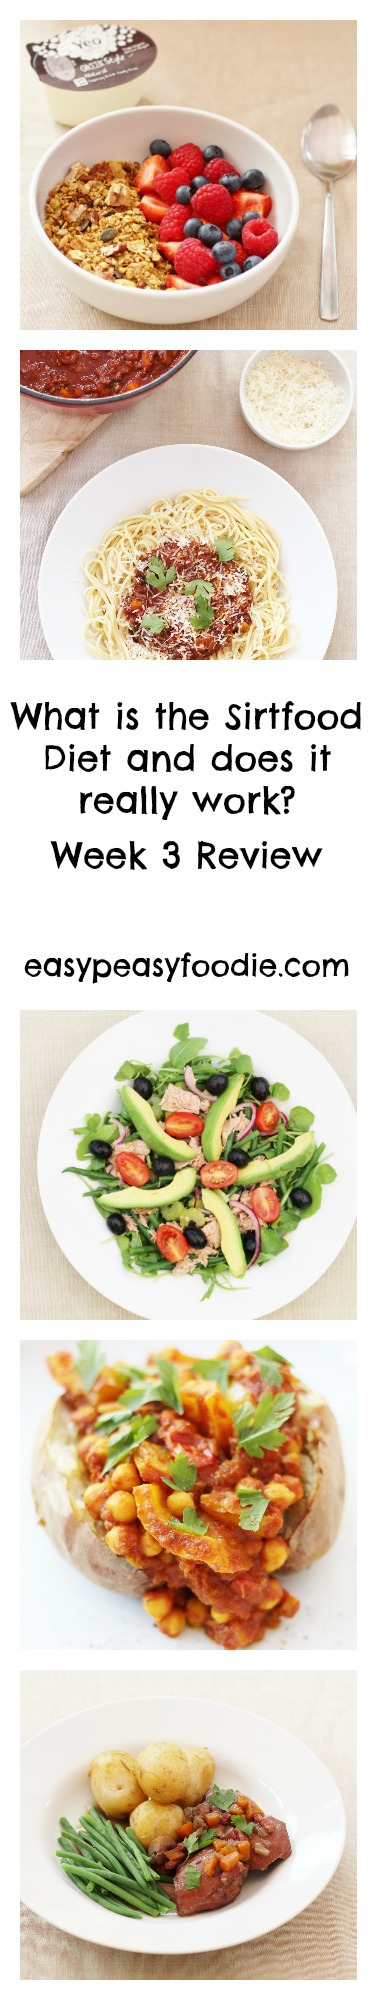 What is the Sirtfood Diet and does it really work? Week 3 Review - pinnable image for Pinterest